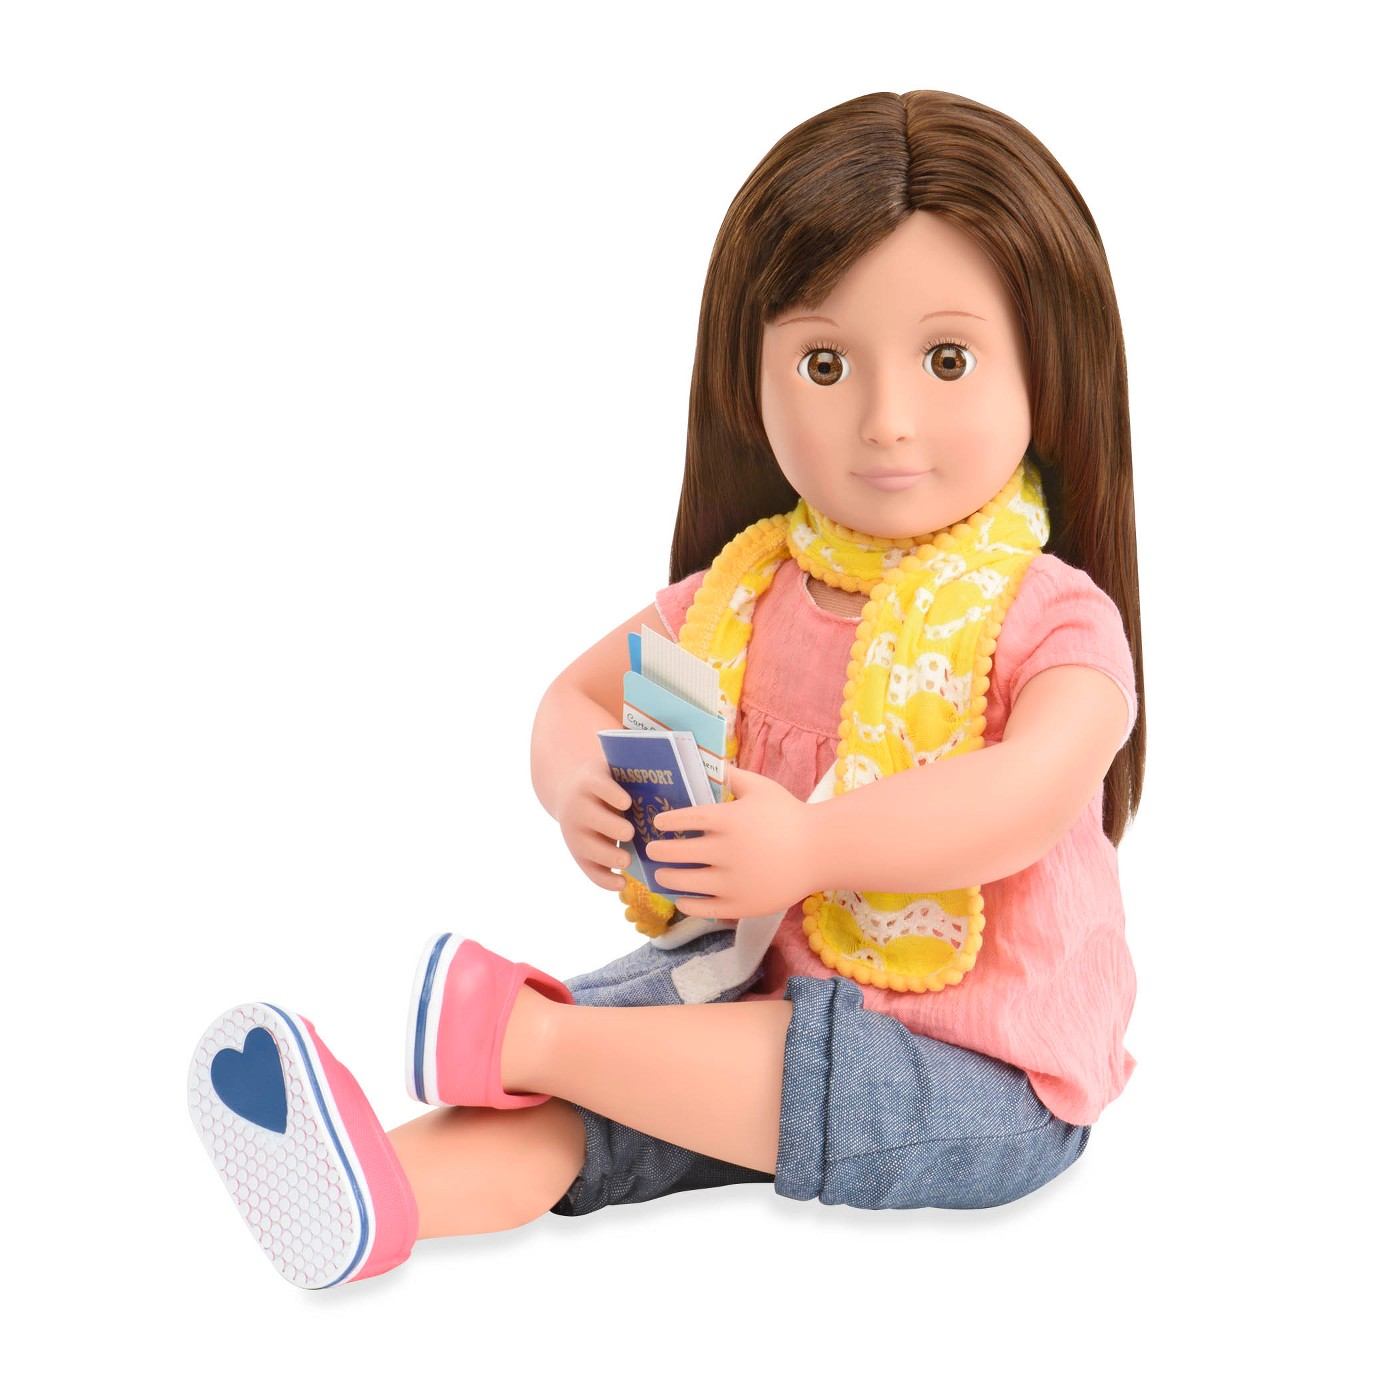 Our Generation Deluxe Travel Doll with Book - Reese - image 2 of 7